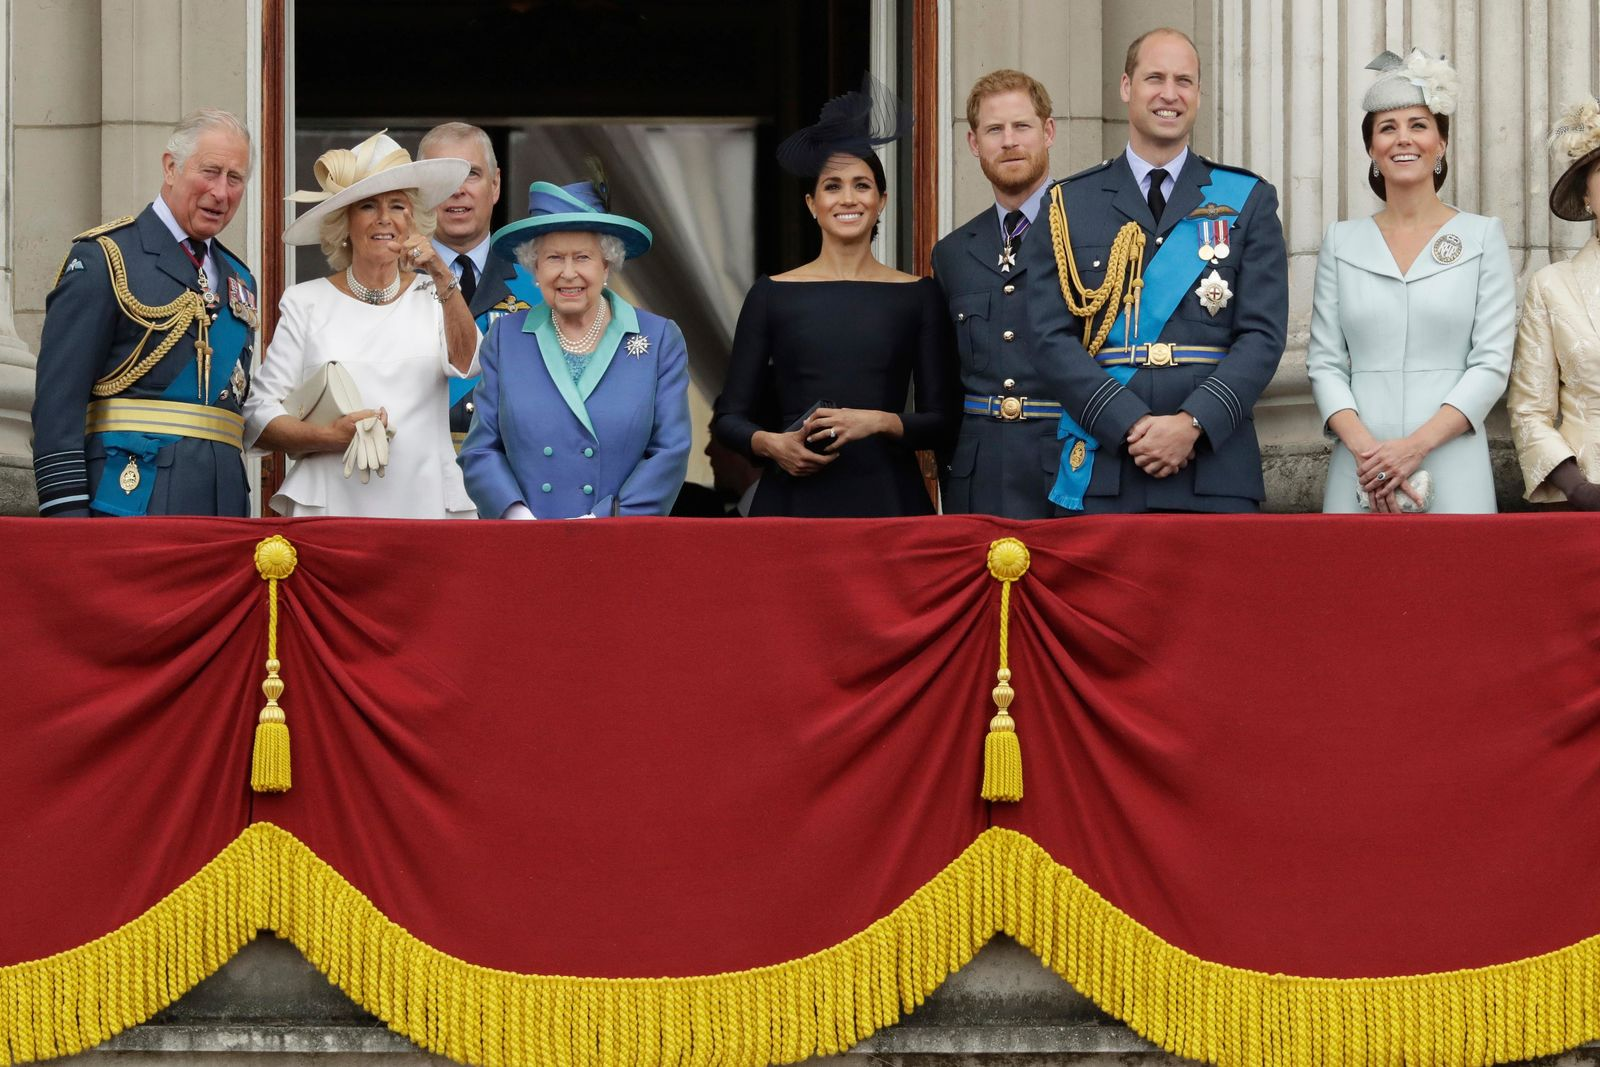 FILE - In this Tuesday, July 10, 2018 file photo, members of the royal family gather on the balcony of Buckingham Palace, with from left, Prince Charles, Camilla the Duchess of Cornwall, Prince Andrew, Queen Elizabeth II, Meghan the Duchess of Sussex, Prince Harry, Prince William and Kate the Duchess of Cambridge, as they watch a flypast of Royal Air Force aircraft pass over Buckingham Palace in London. In a statement issued on Monday, Jan. 13, 2020, Queen Elizabeth II says she has agreed to grant Prince Harry and Meghan their wish for a more independent life that will see them move part-time to Canada. (AP Photo/Matt Dunham, File)